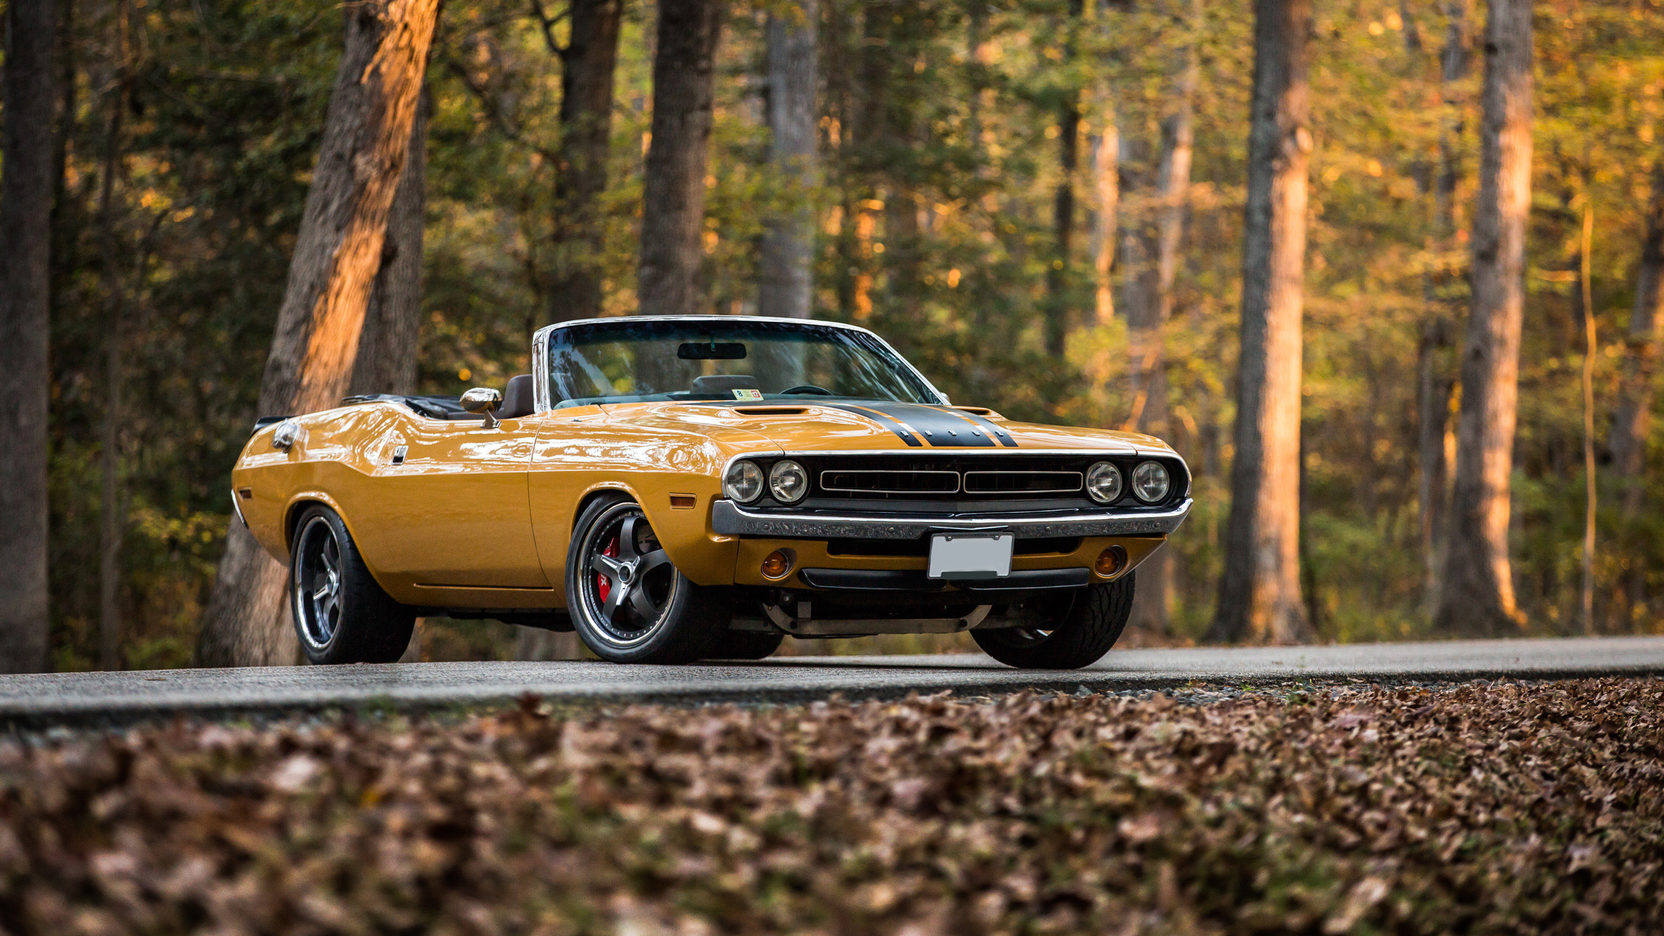 Dodge Challenger Restomod Packs 572 Cubic Inches Of Hemi